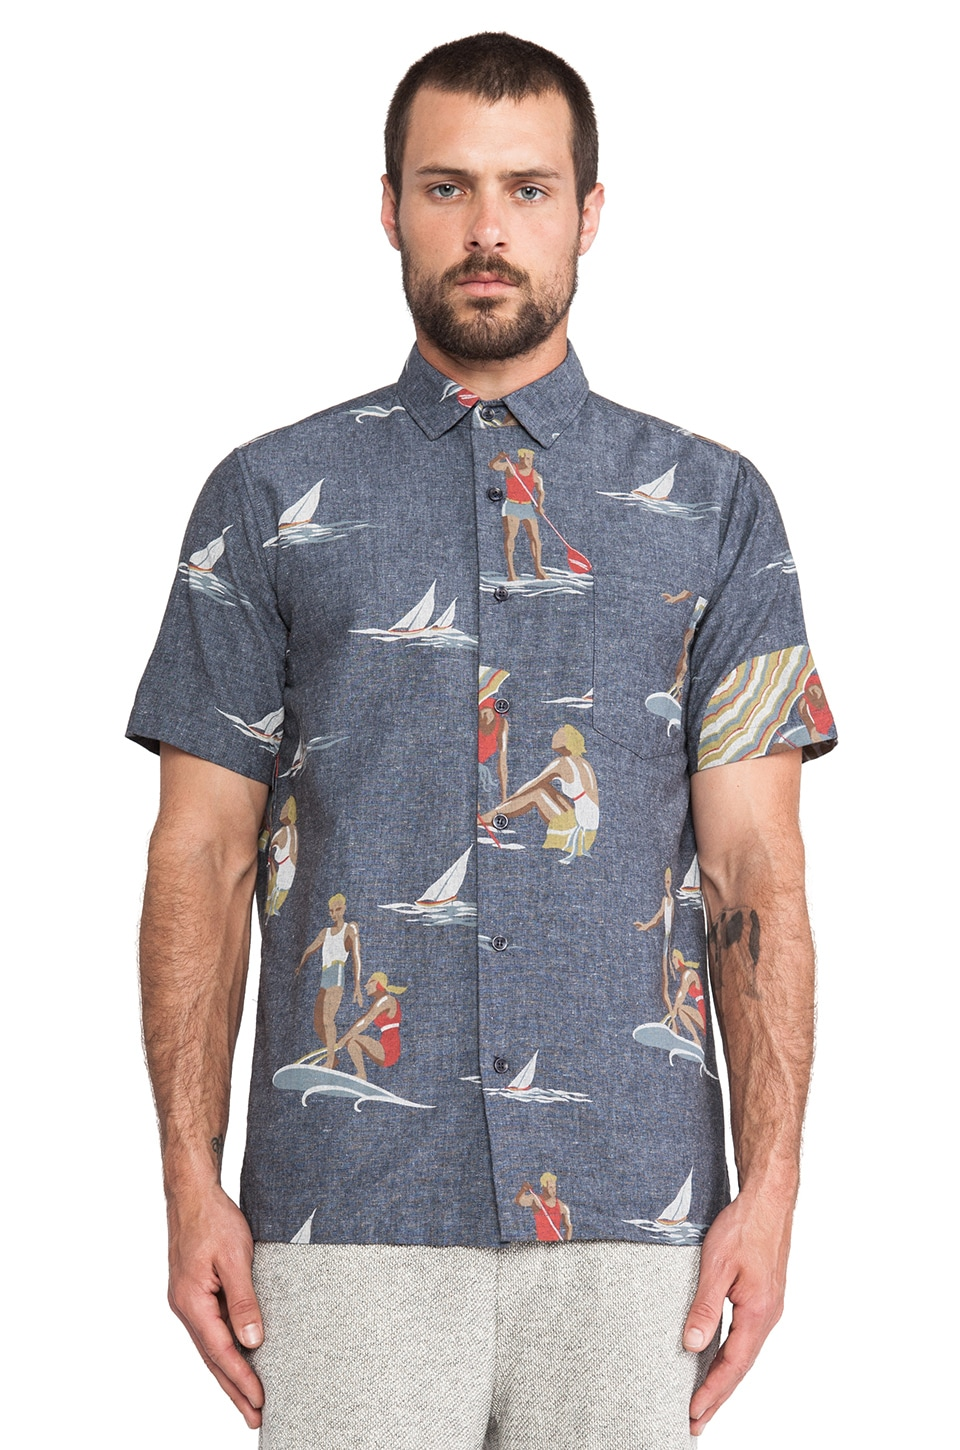 Shades of Grey by Micah Cohen Vacation Shirt in Sea Sports